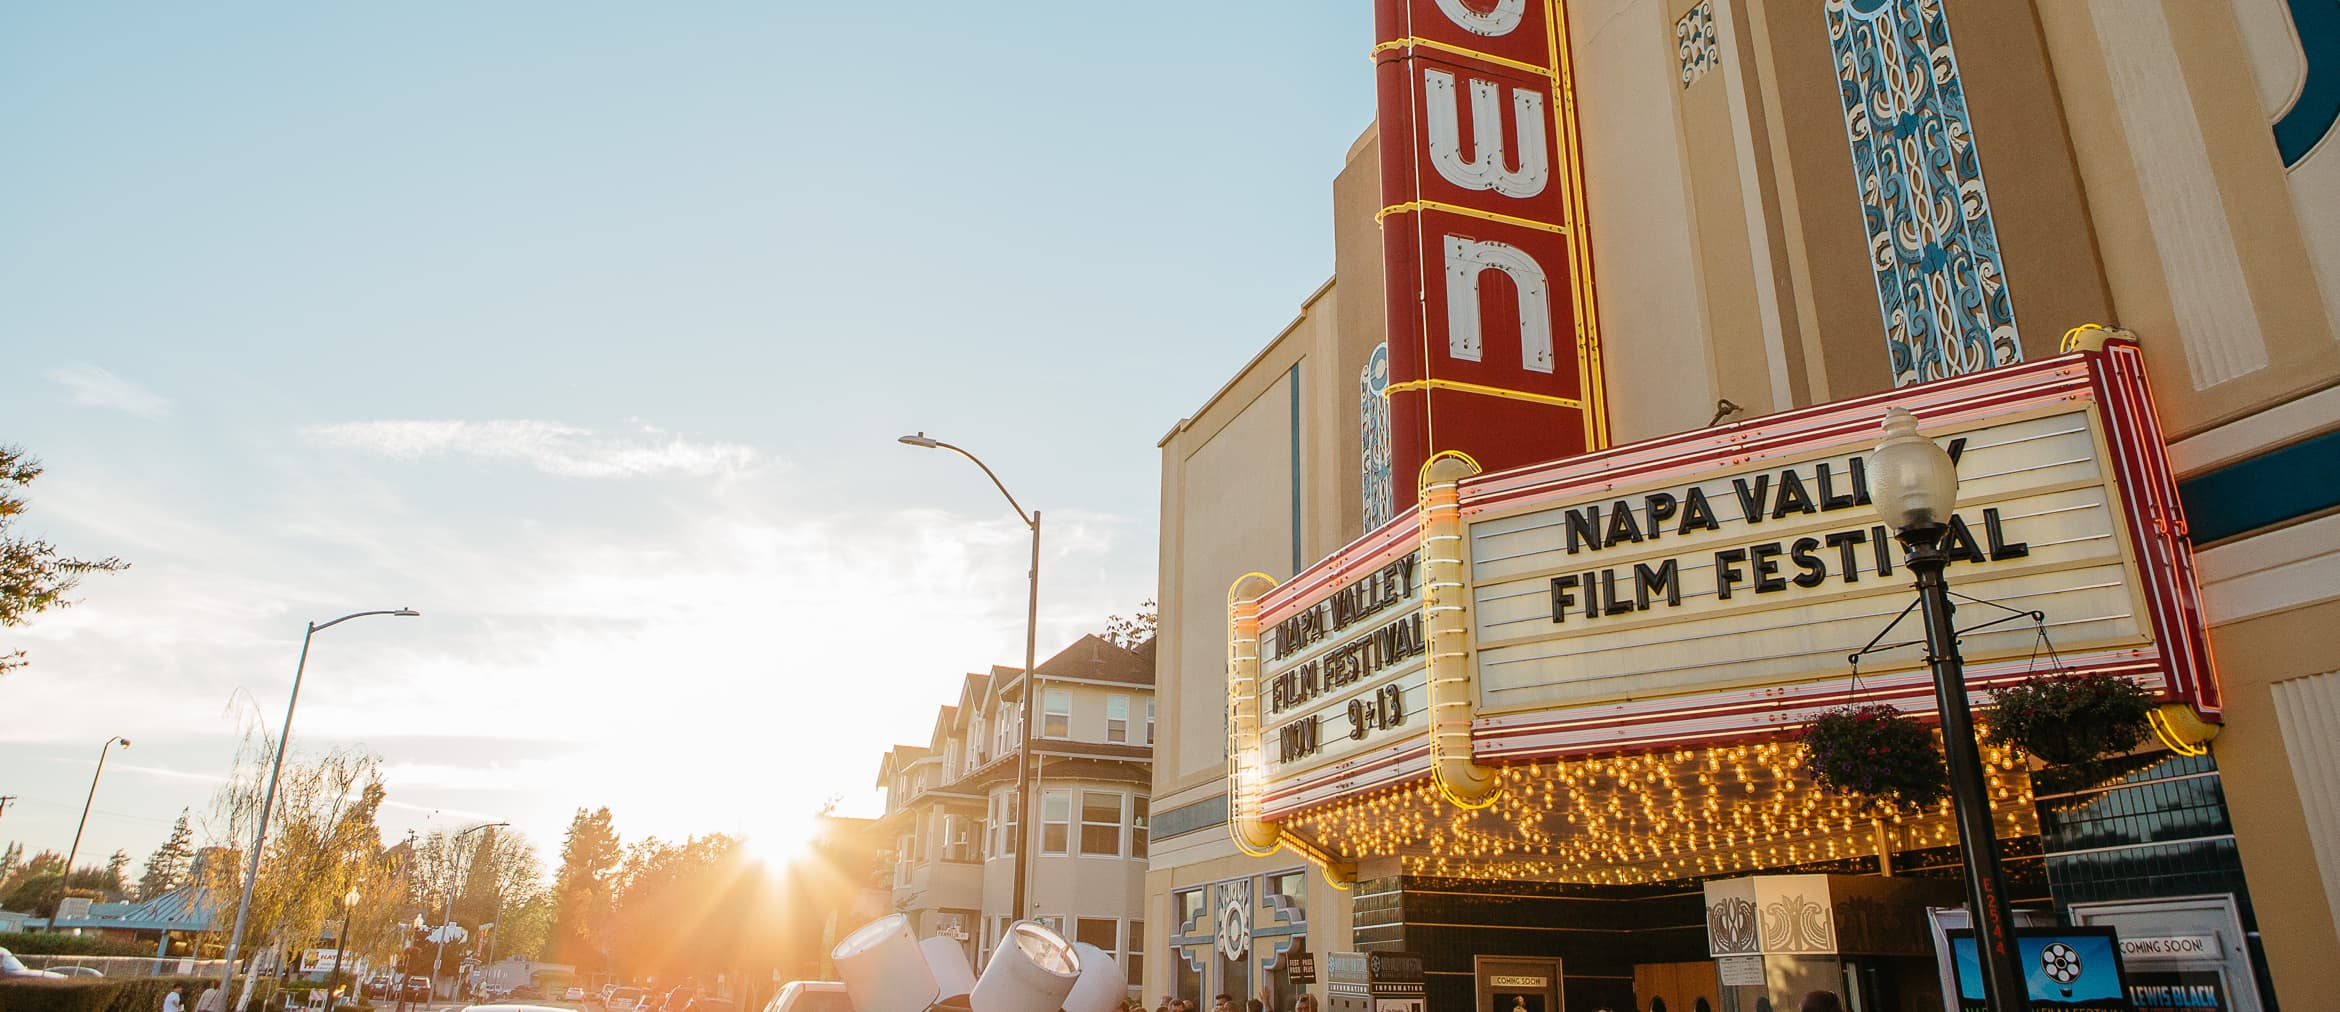 NVFF Uptown Theater Marquee